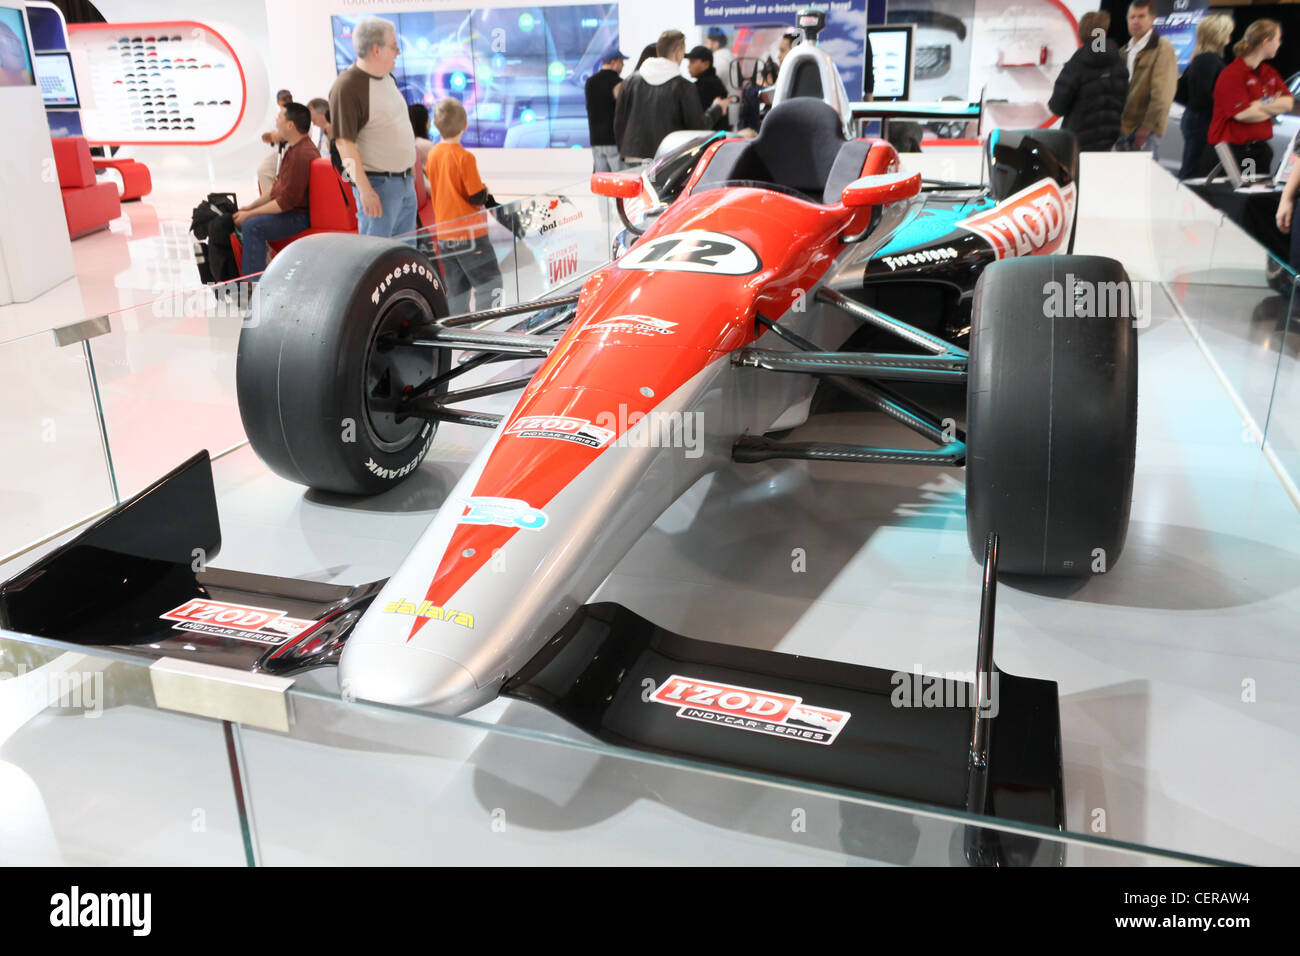 formula one f1 fast race racing sports car on display at a car show - Stock Image